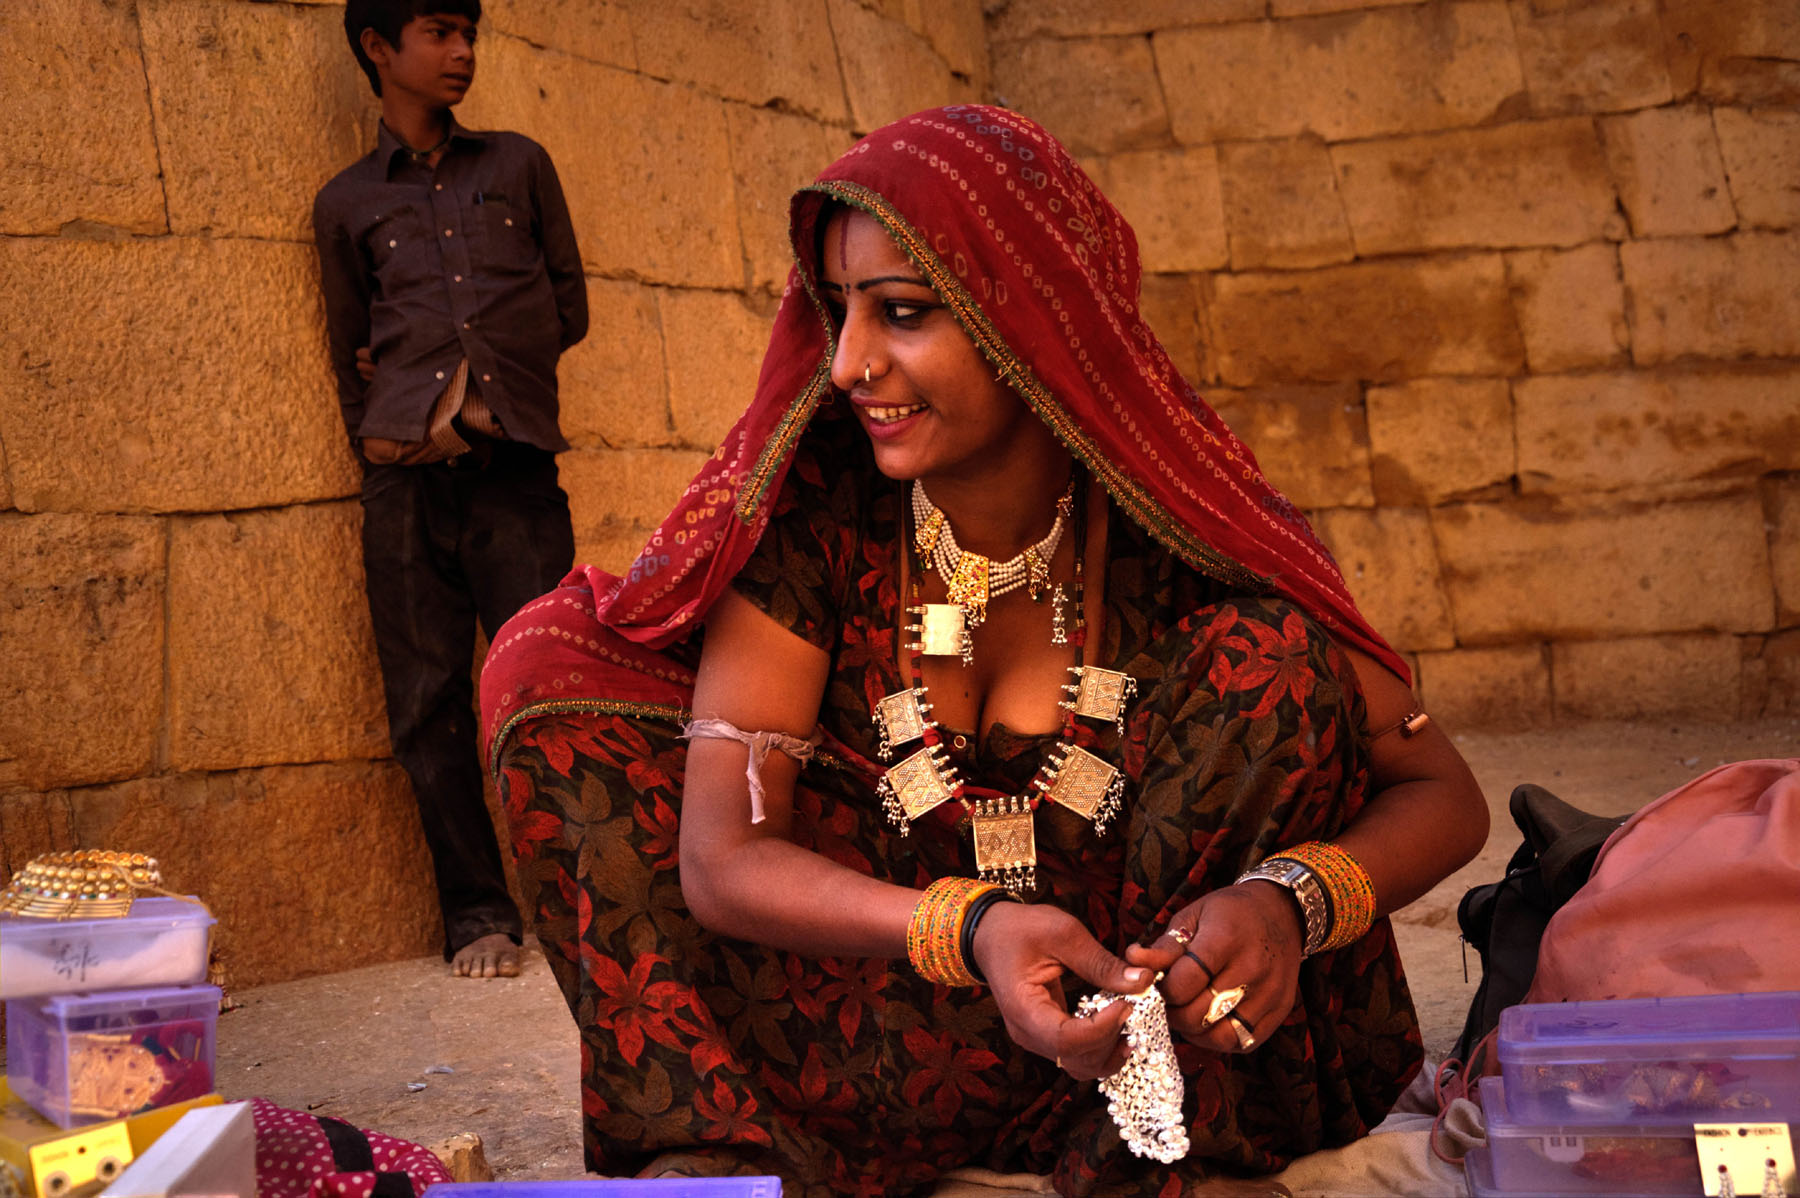 Rajasthani women selling articles at Unesco's world heritage site Jaisalmer Fort​